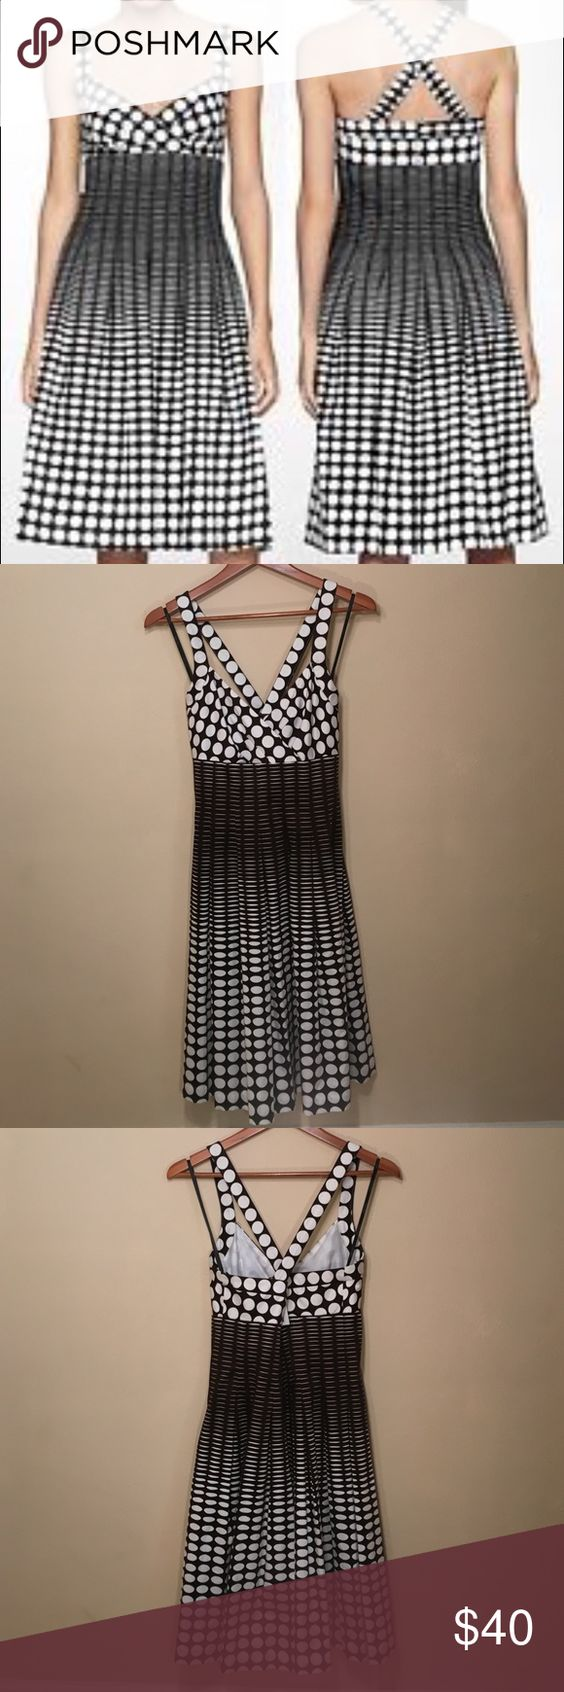 ‼️SALE‼️Calvin Klein Brown Polka Dot Dress Never worn chocolate and white CK dress. Very cute with crossing straps in the back. Perfect condition from a smoke-free home. Open to offers! Discount when you bundle. Calvin Klein Dresses Midi